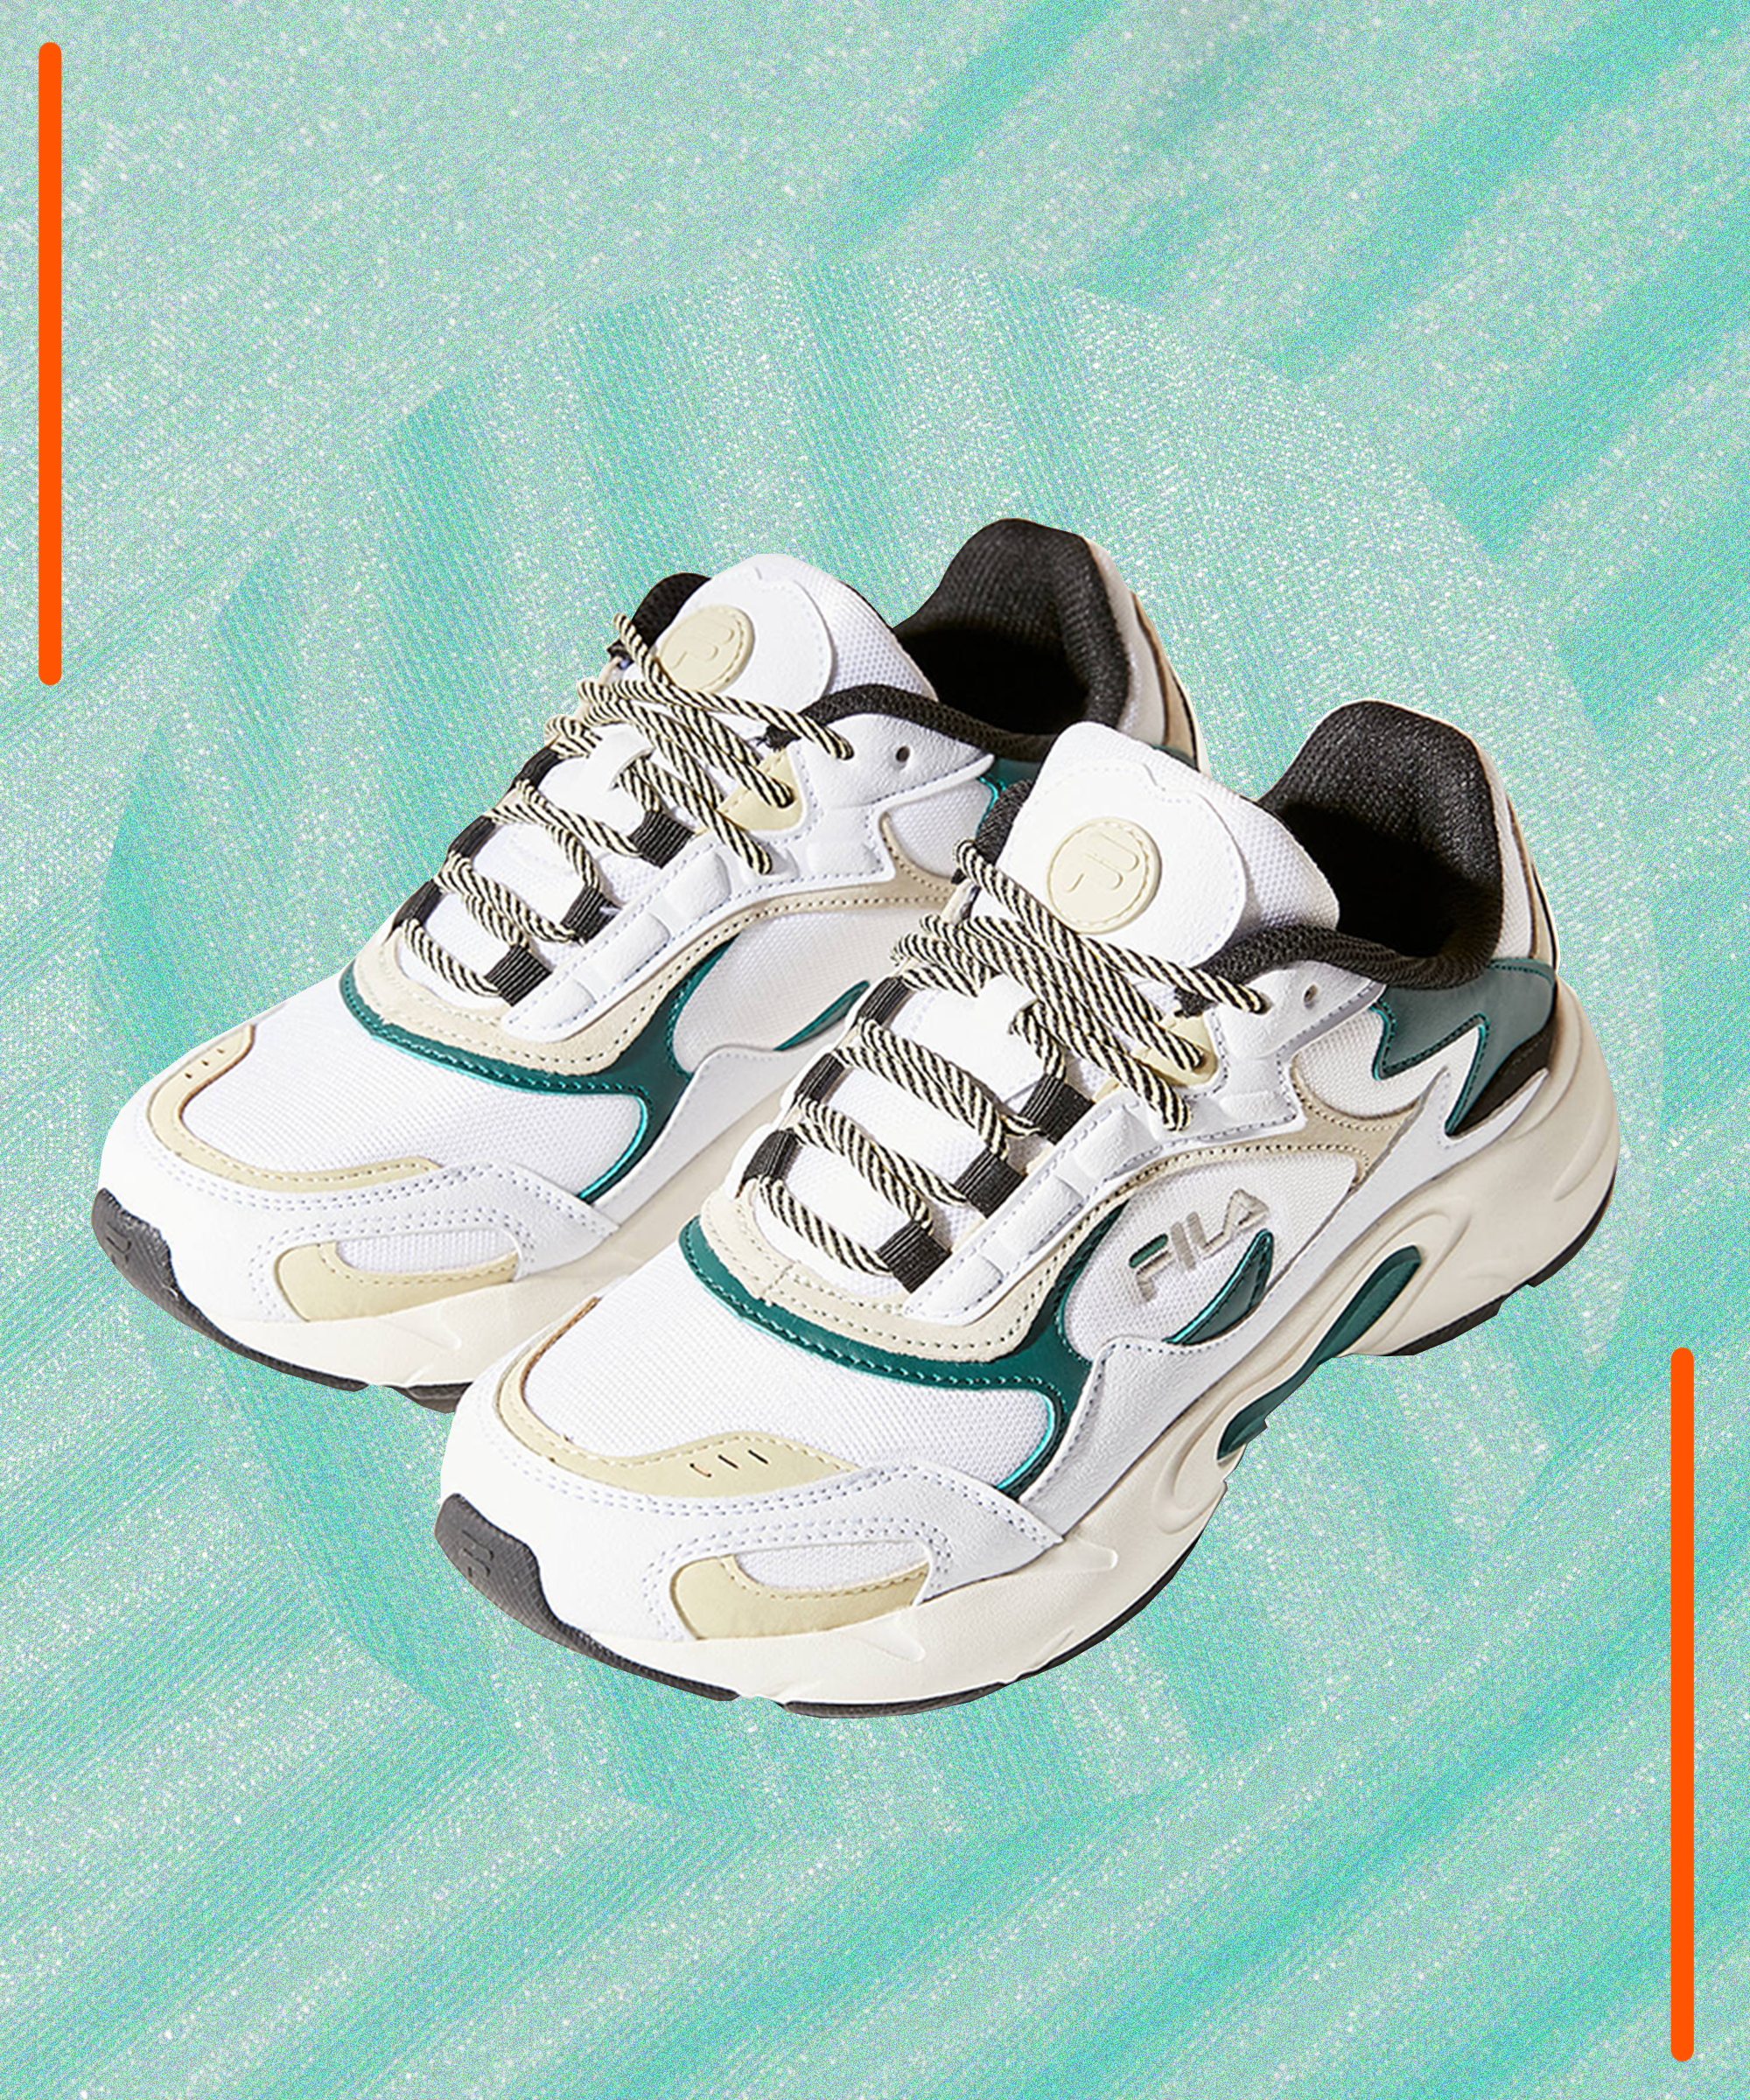 79ad96437b8 Coolest Ugly Dad Sneakers For Women - 2019 Trends